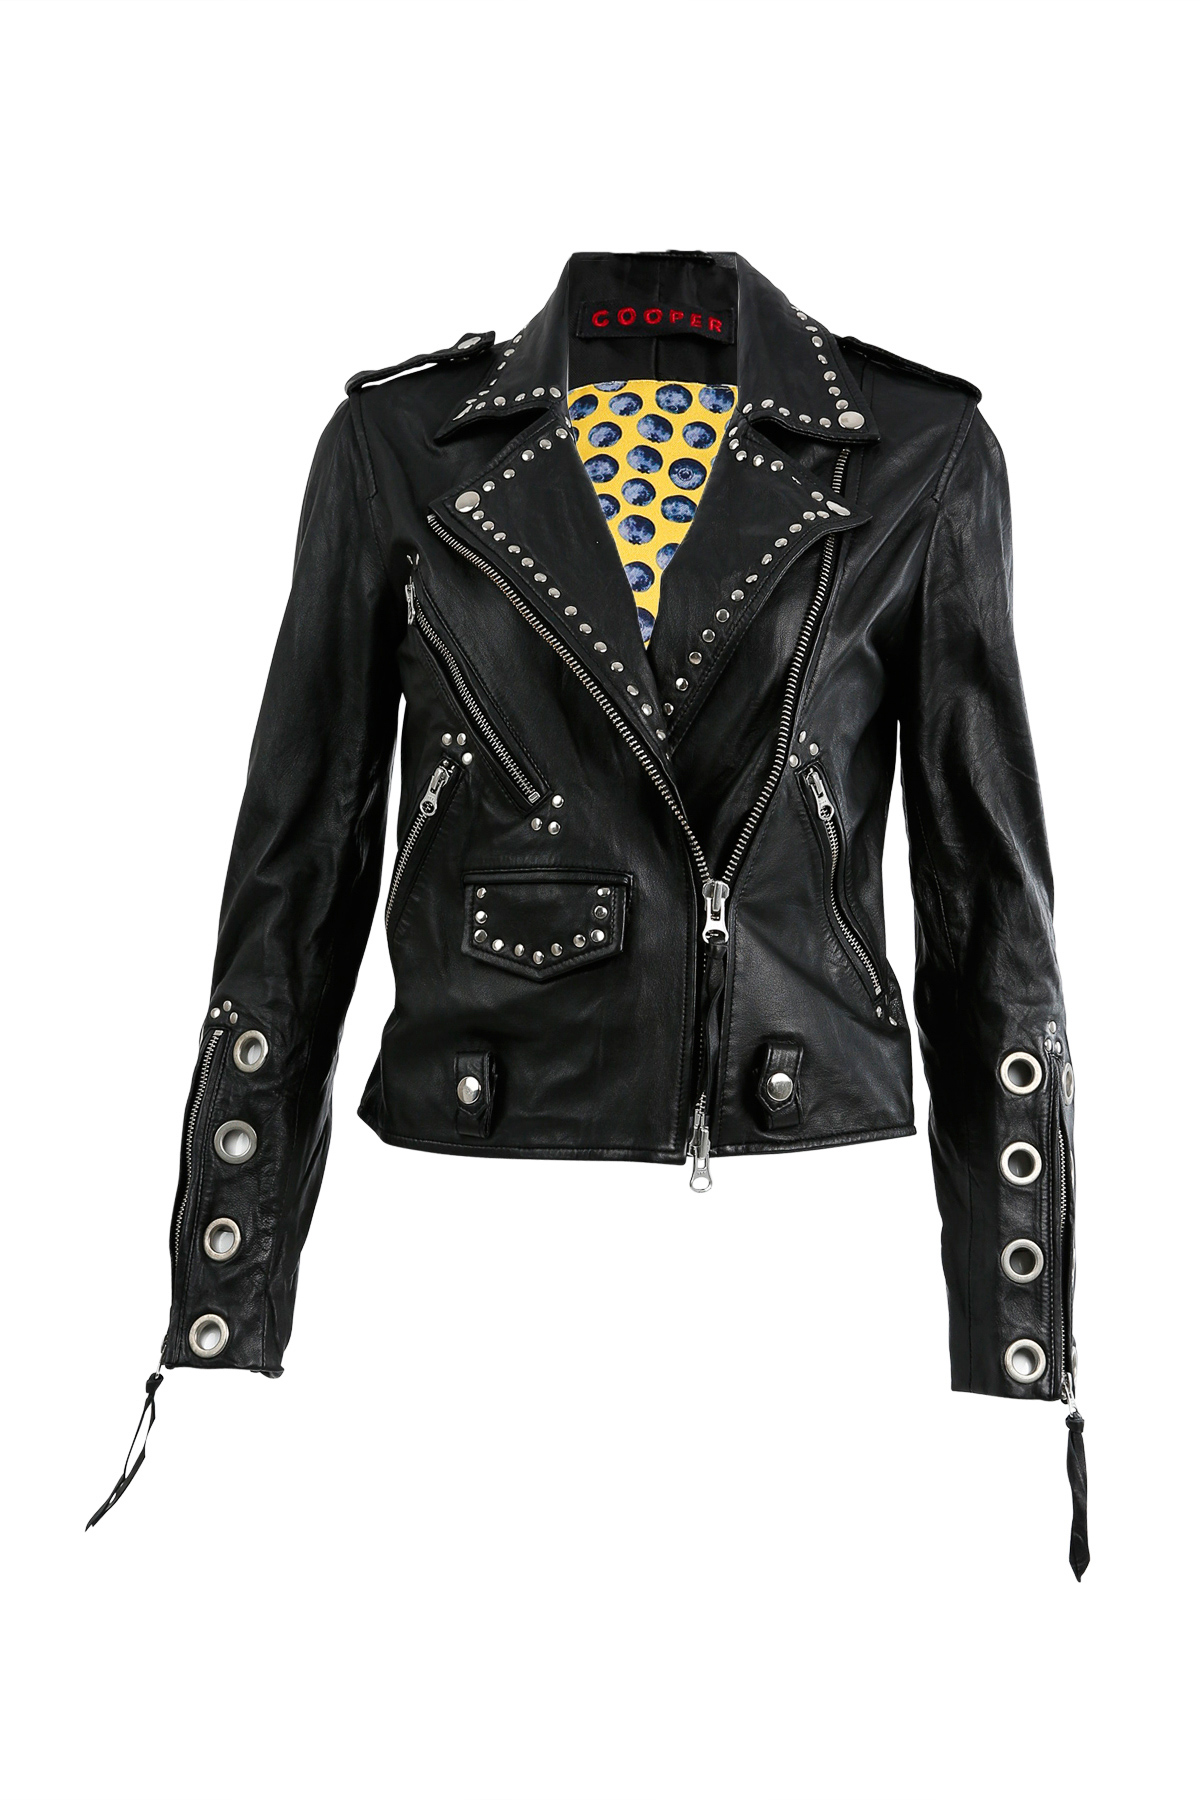 view moto of studded jacket tough in perfect front leather faux amount black the embroidered akira stud floral